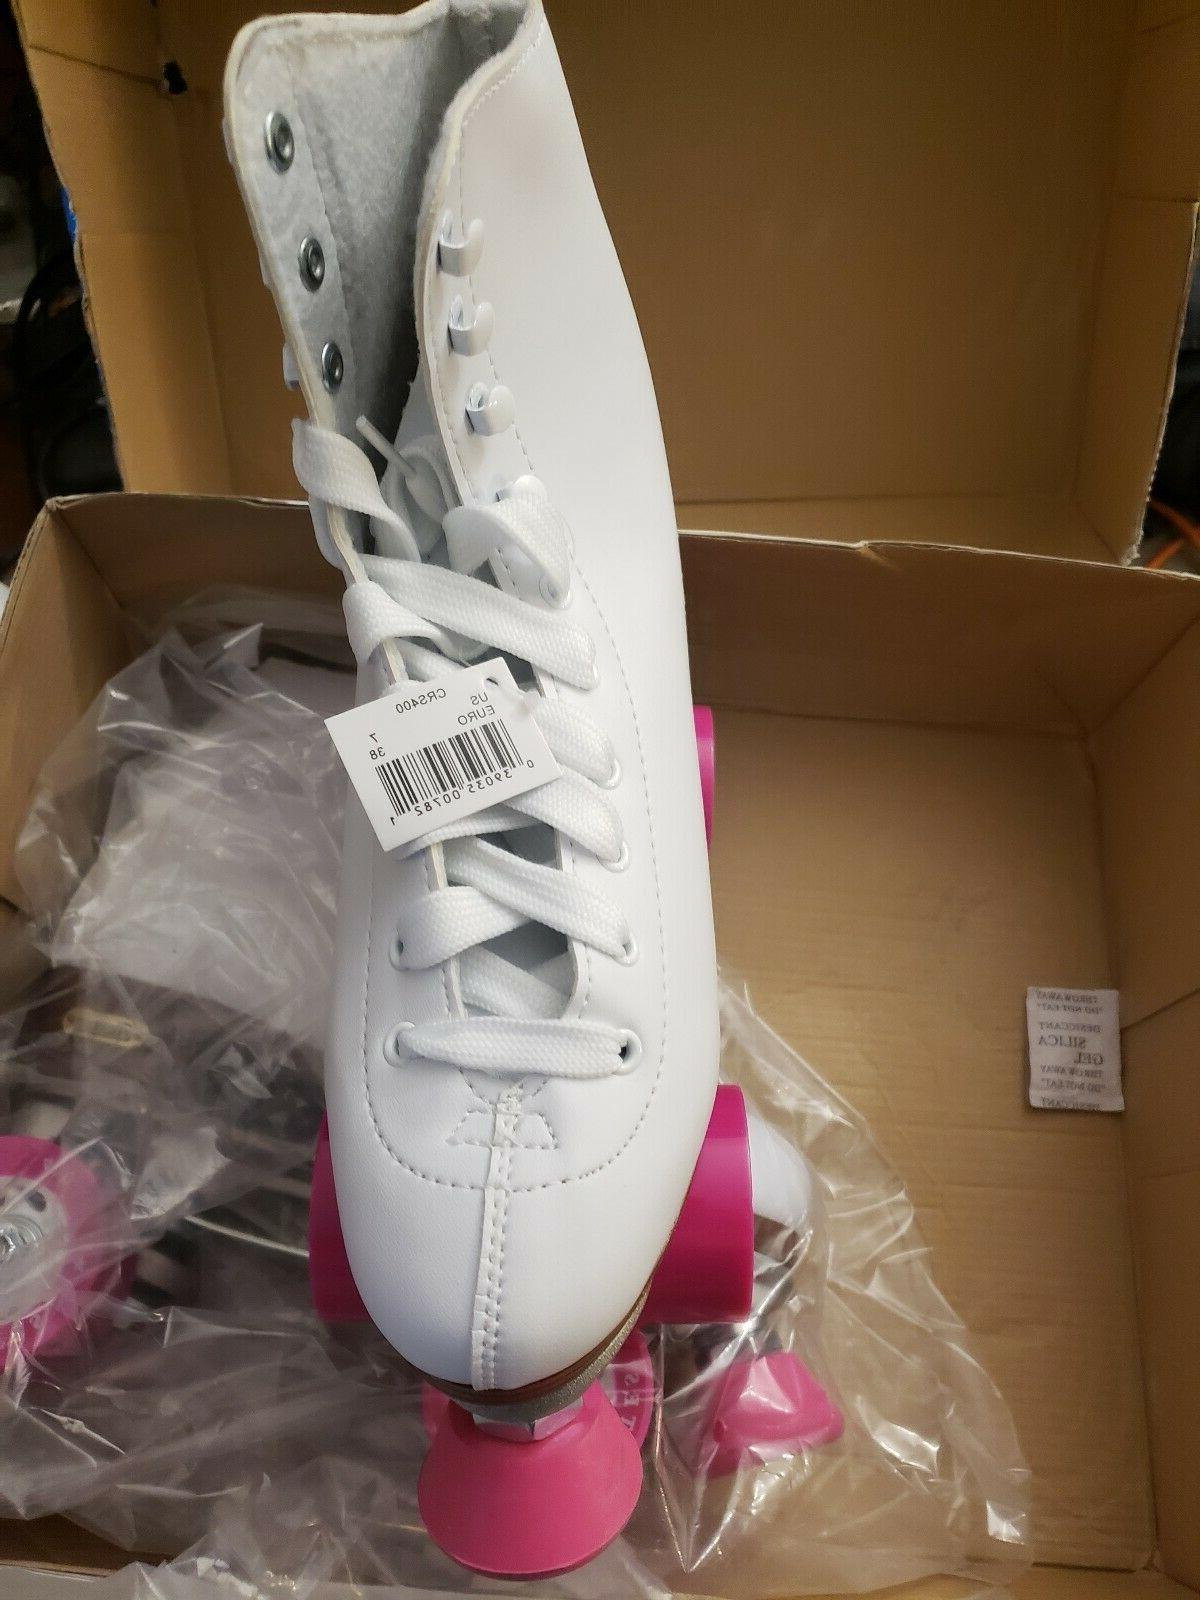 Chicago Women's Classic Roller Skates – White and Pink R